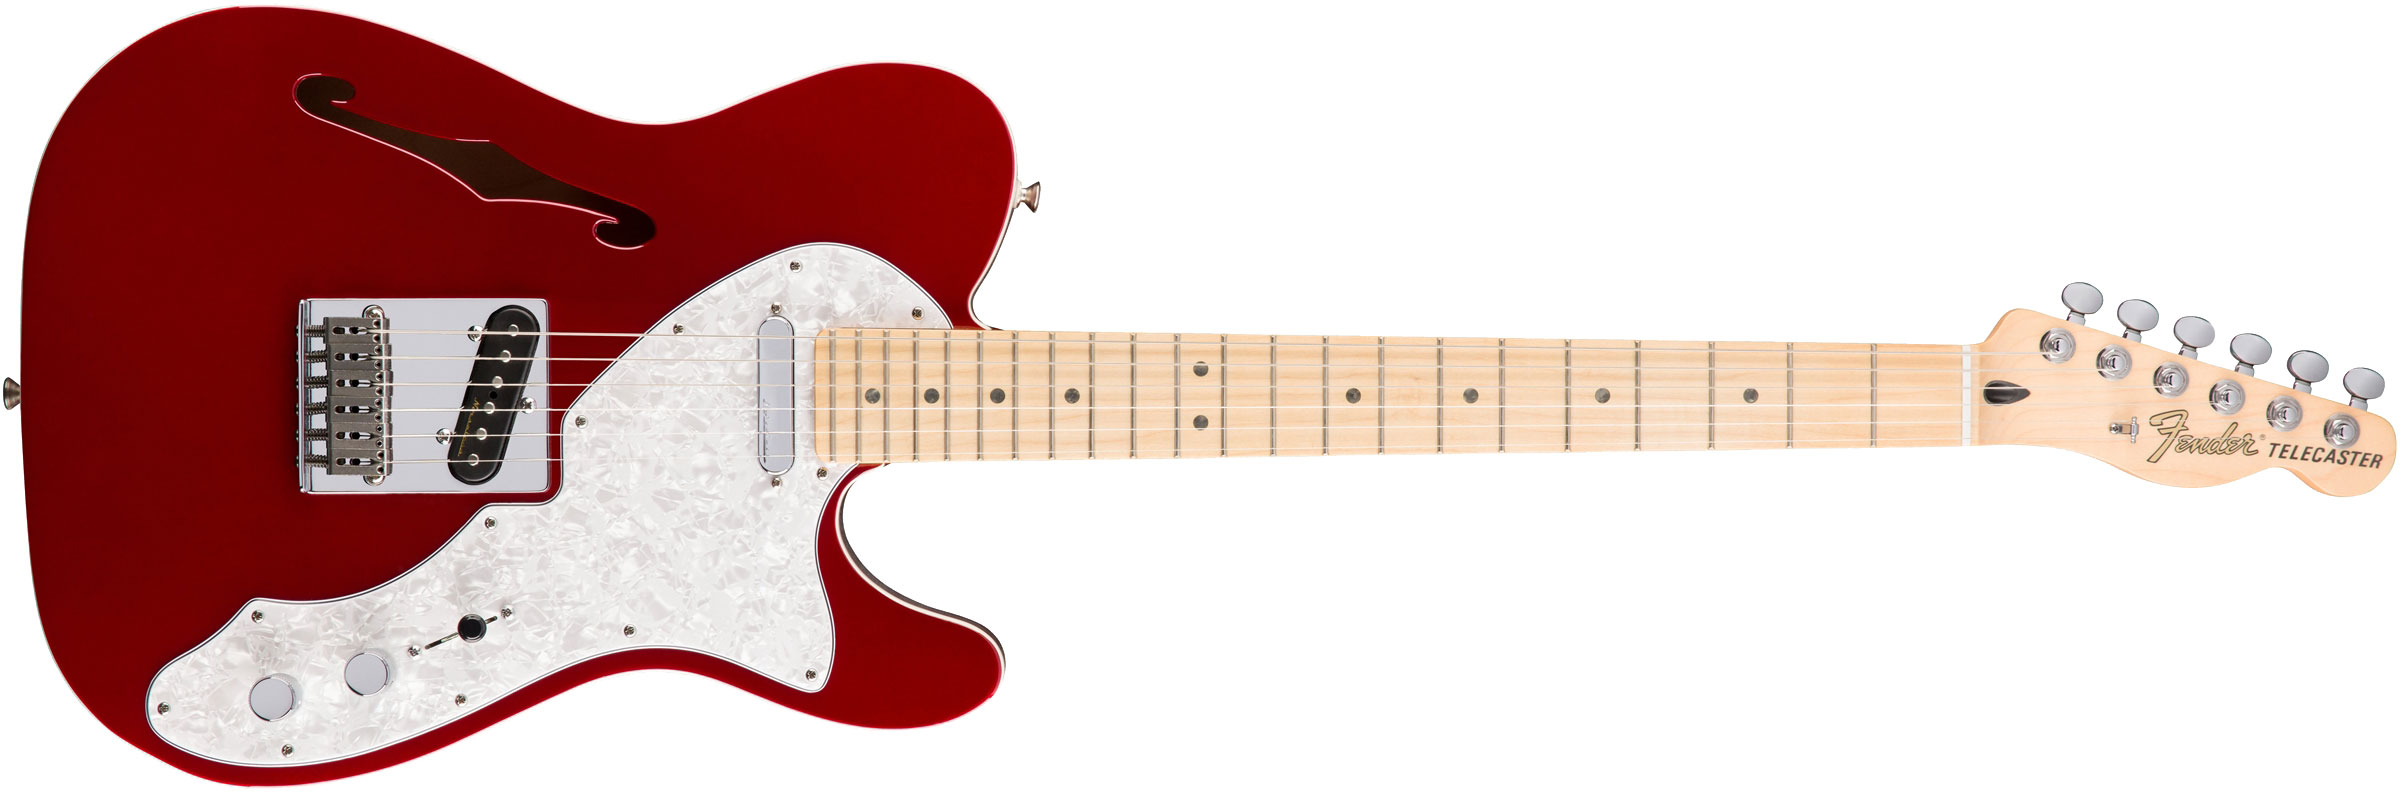 GUITARRA FENDER DELUXE TELE THINLINE MN 014-7602-309 CANDY APPLE RED